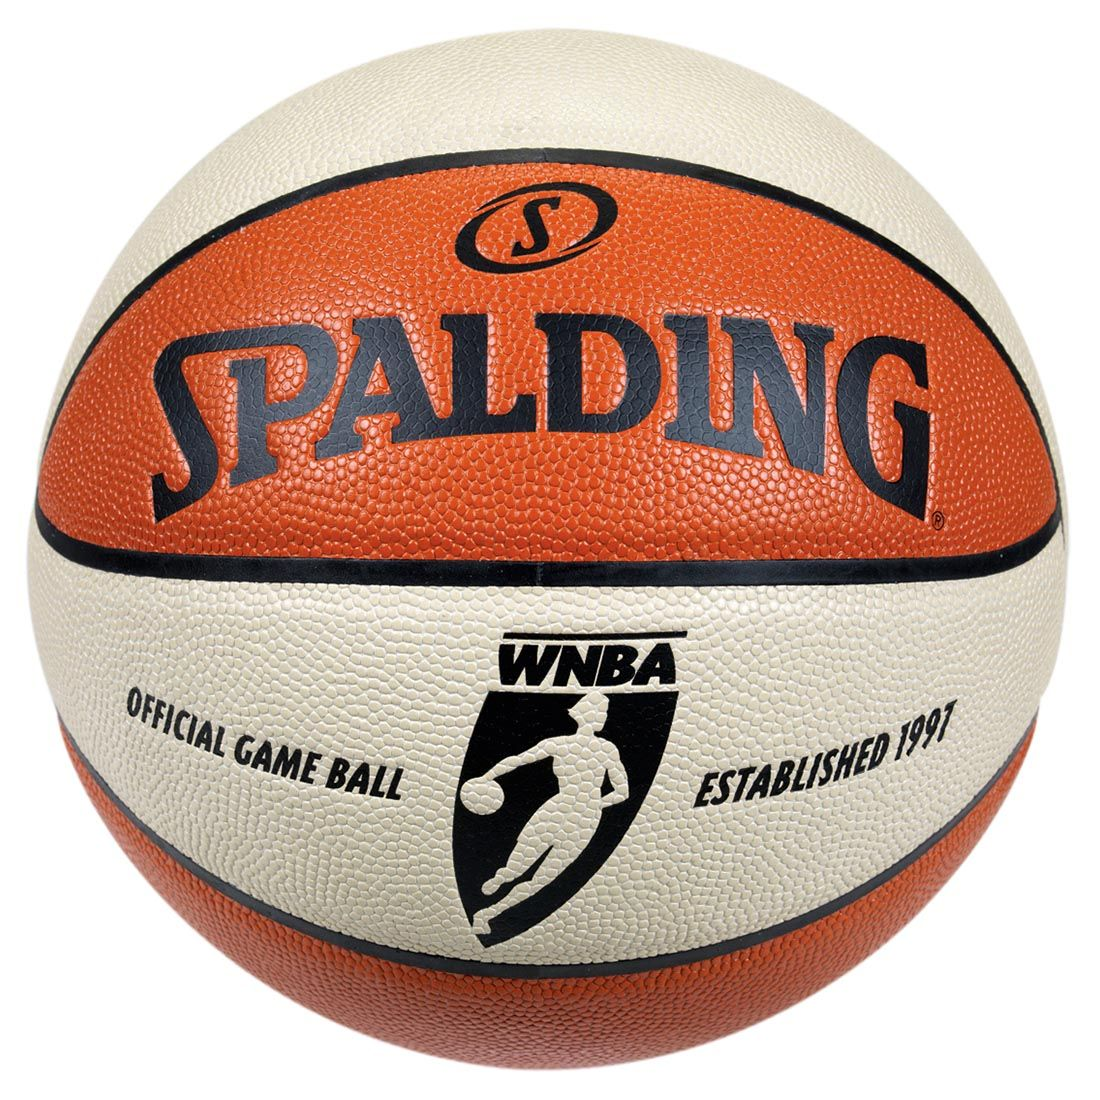 marketing strategies of the womens national basketball league wnba Nba careers nba teams the women's national basketball association and the nba g league nba g league, and wnba teams are hiring ticket sales professionals.